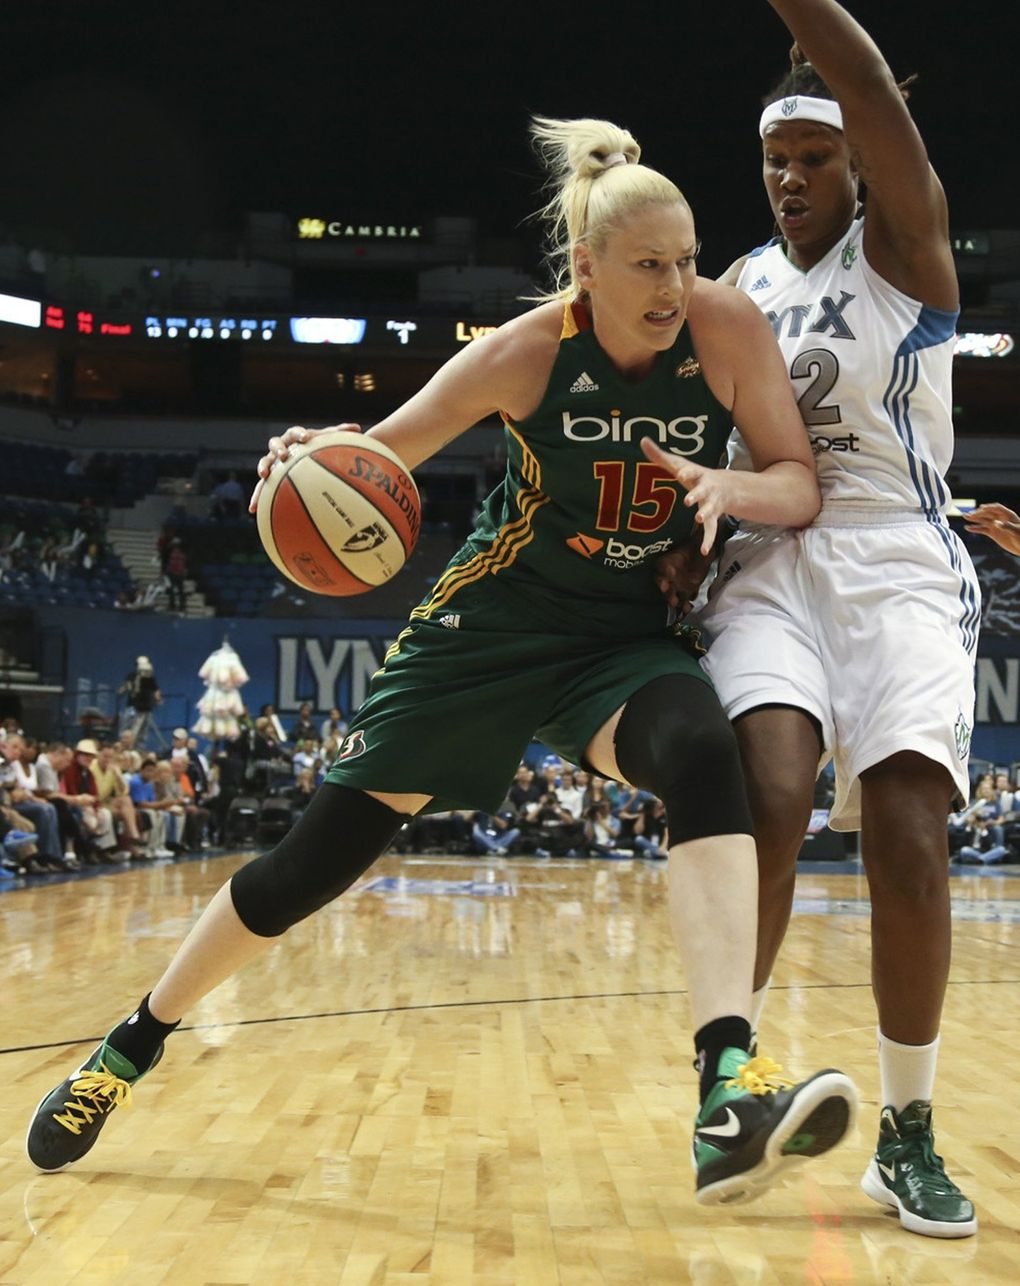 Rebekkah Brunson of the Minnesota Lynx tries to blocked the path of the Seattle Storm's Lauren Jackson, left, during the first quarter on Tuesday, October 2, 2012, at the Target Center in Minneapolis, Minnesota, in Game 3 of their playoff series. (Kyndell Harkness / McClatchy Newspapers)